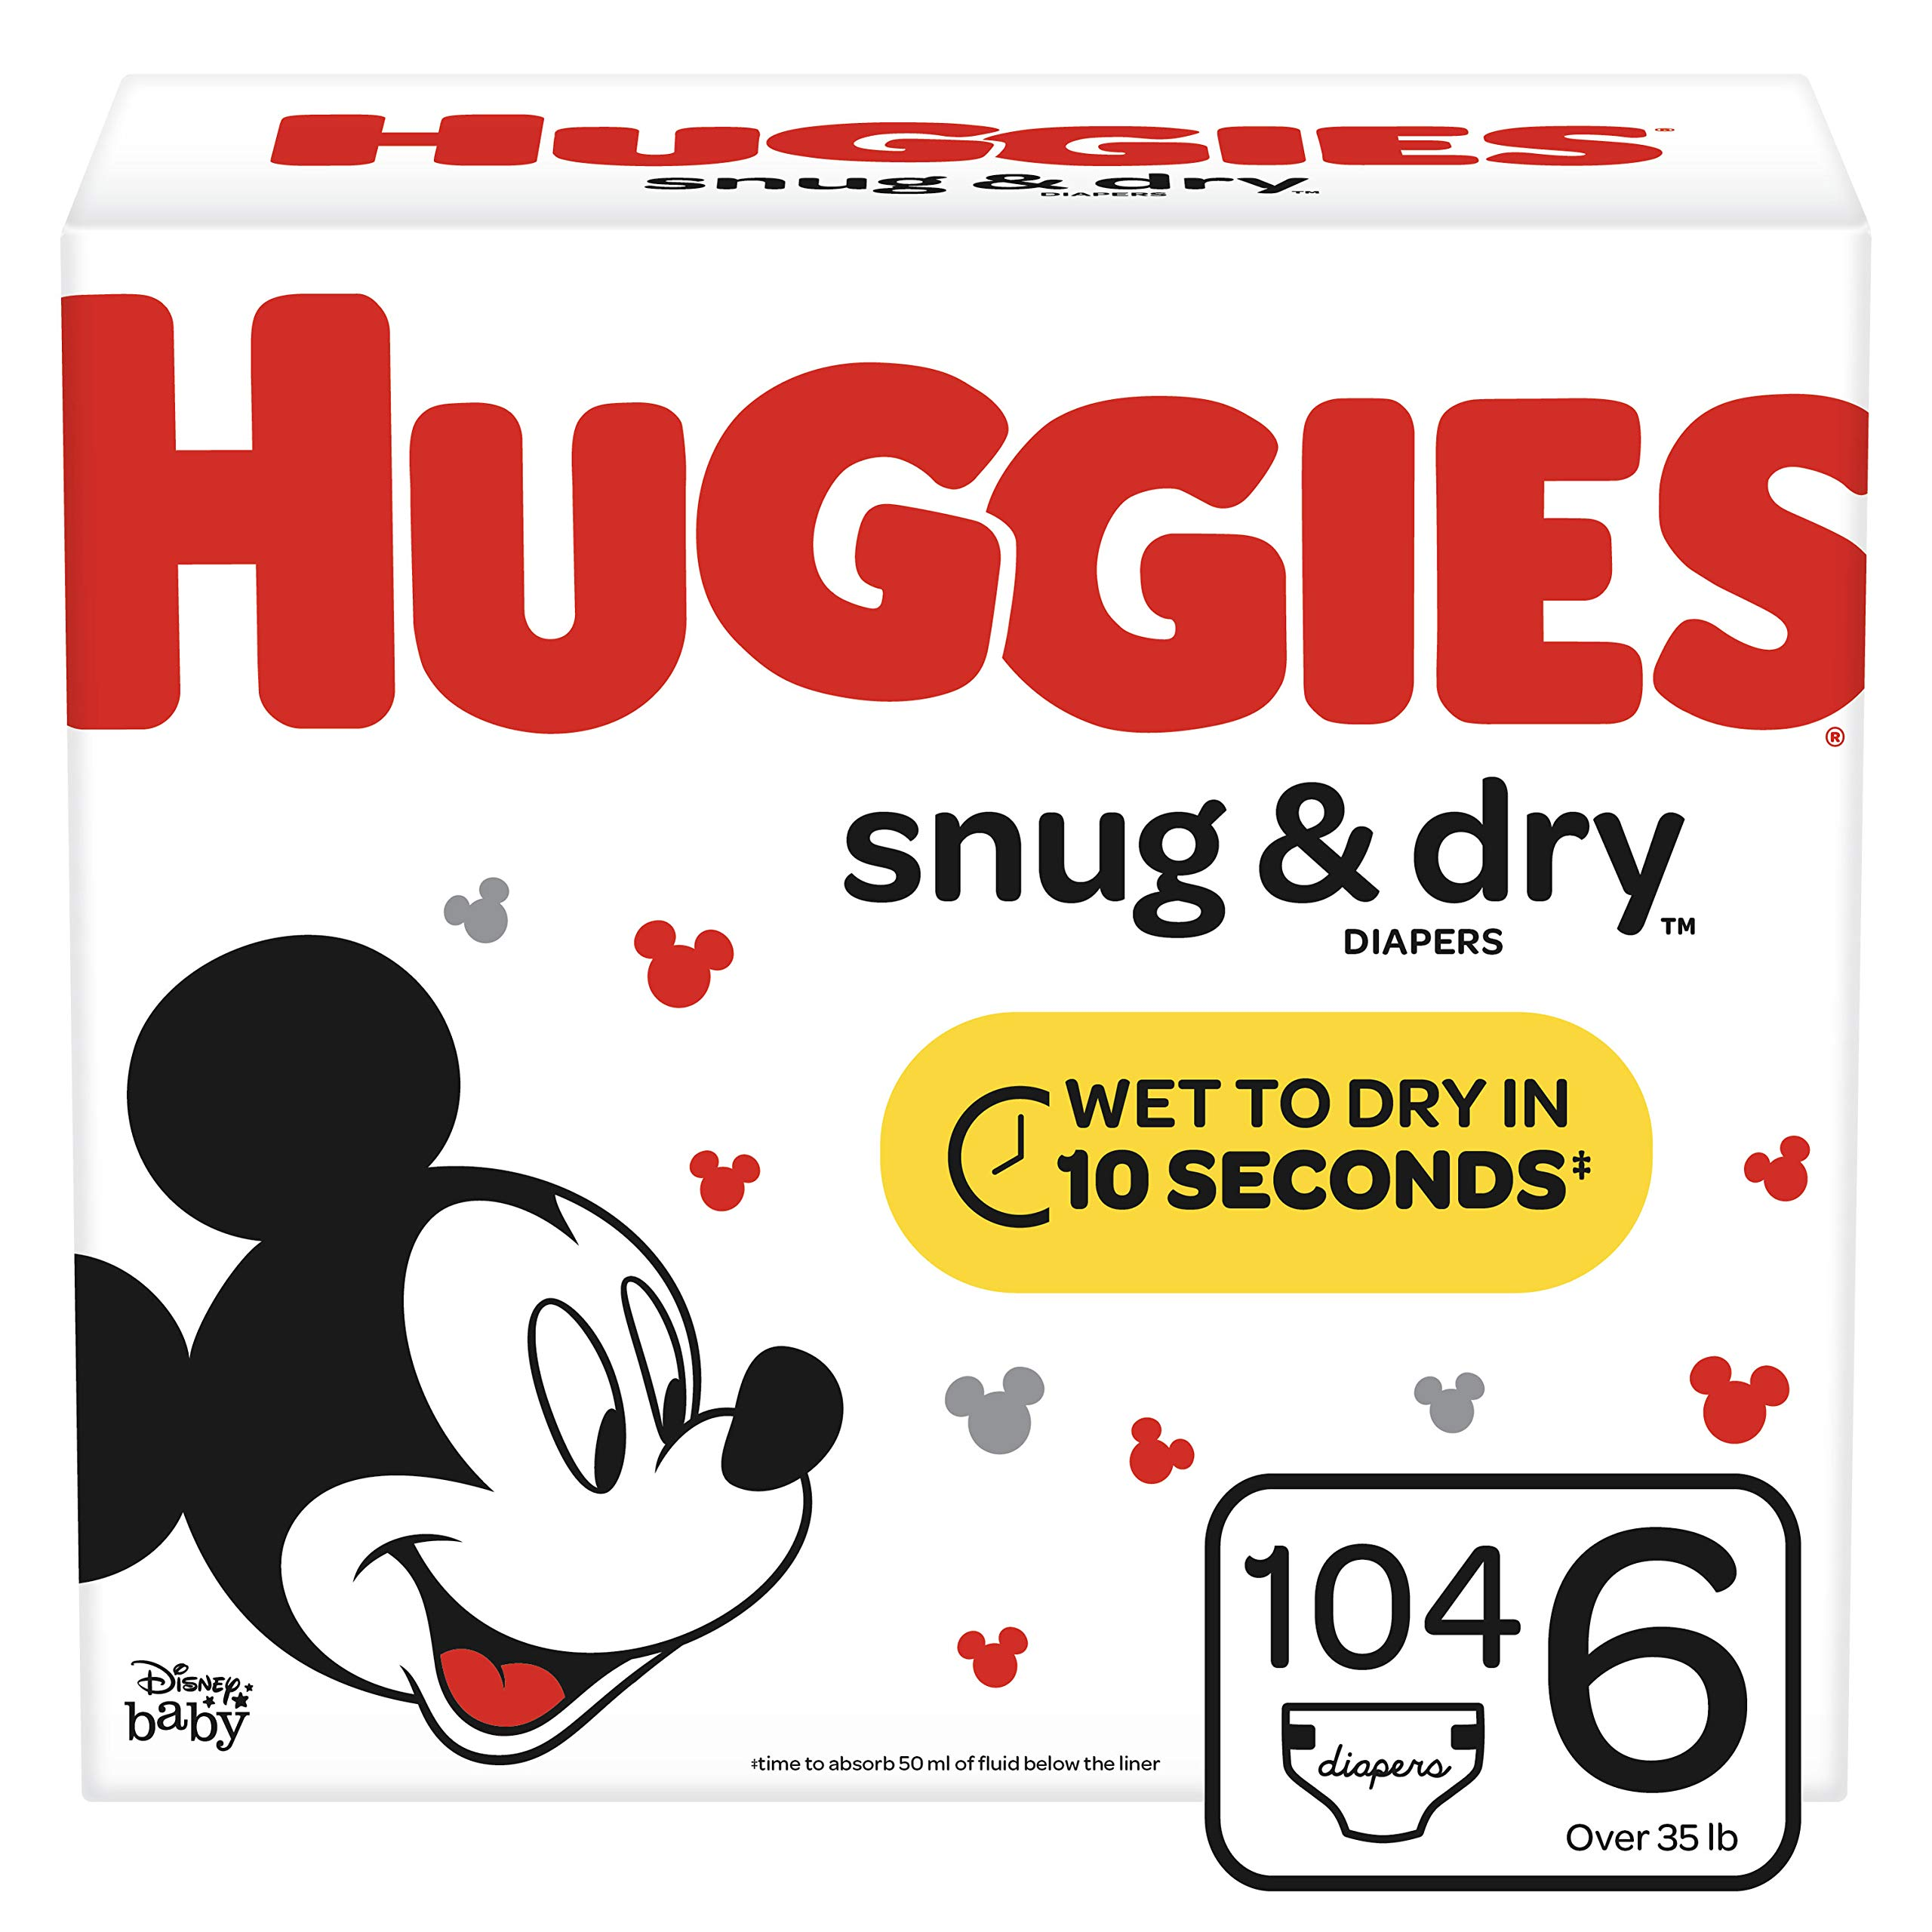 Huggies Snug & Dry Diapers, Size 6 (35+ lb.), 104 Ct, Giant Pack (Packaging May Vary) by HUGGIES